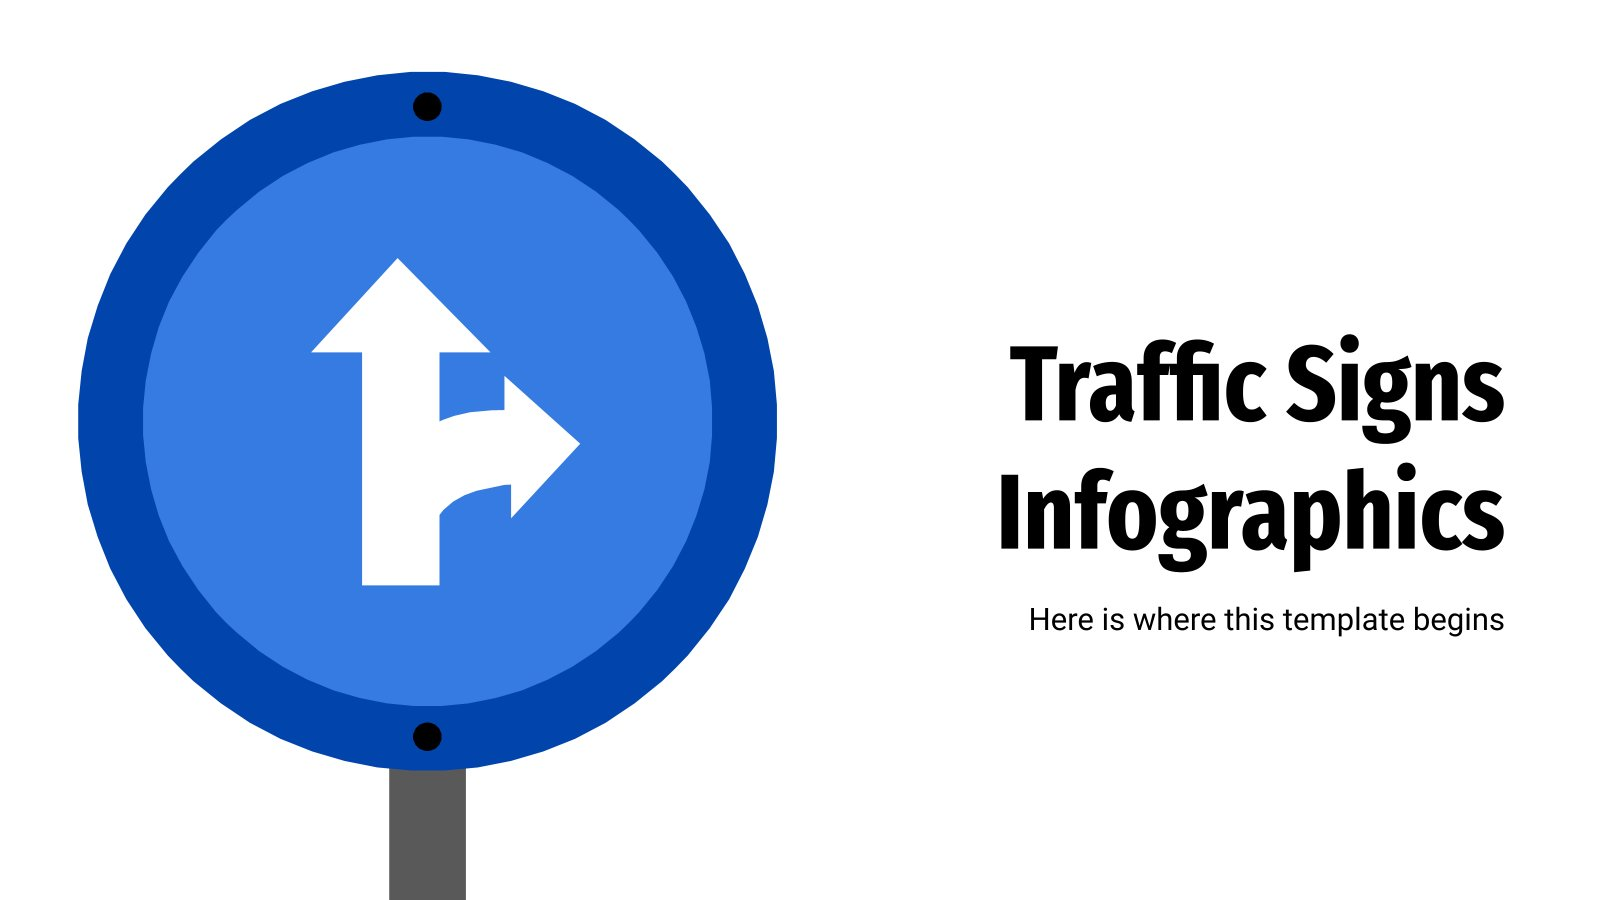 Traffic Signs Infographics presentation template